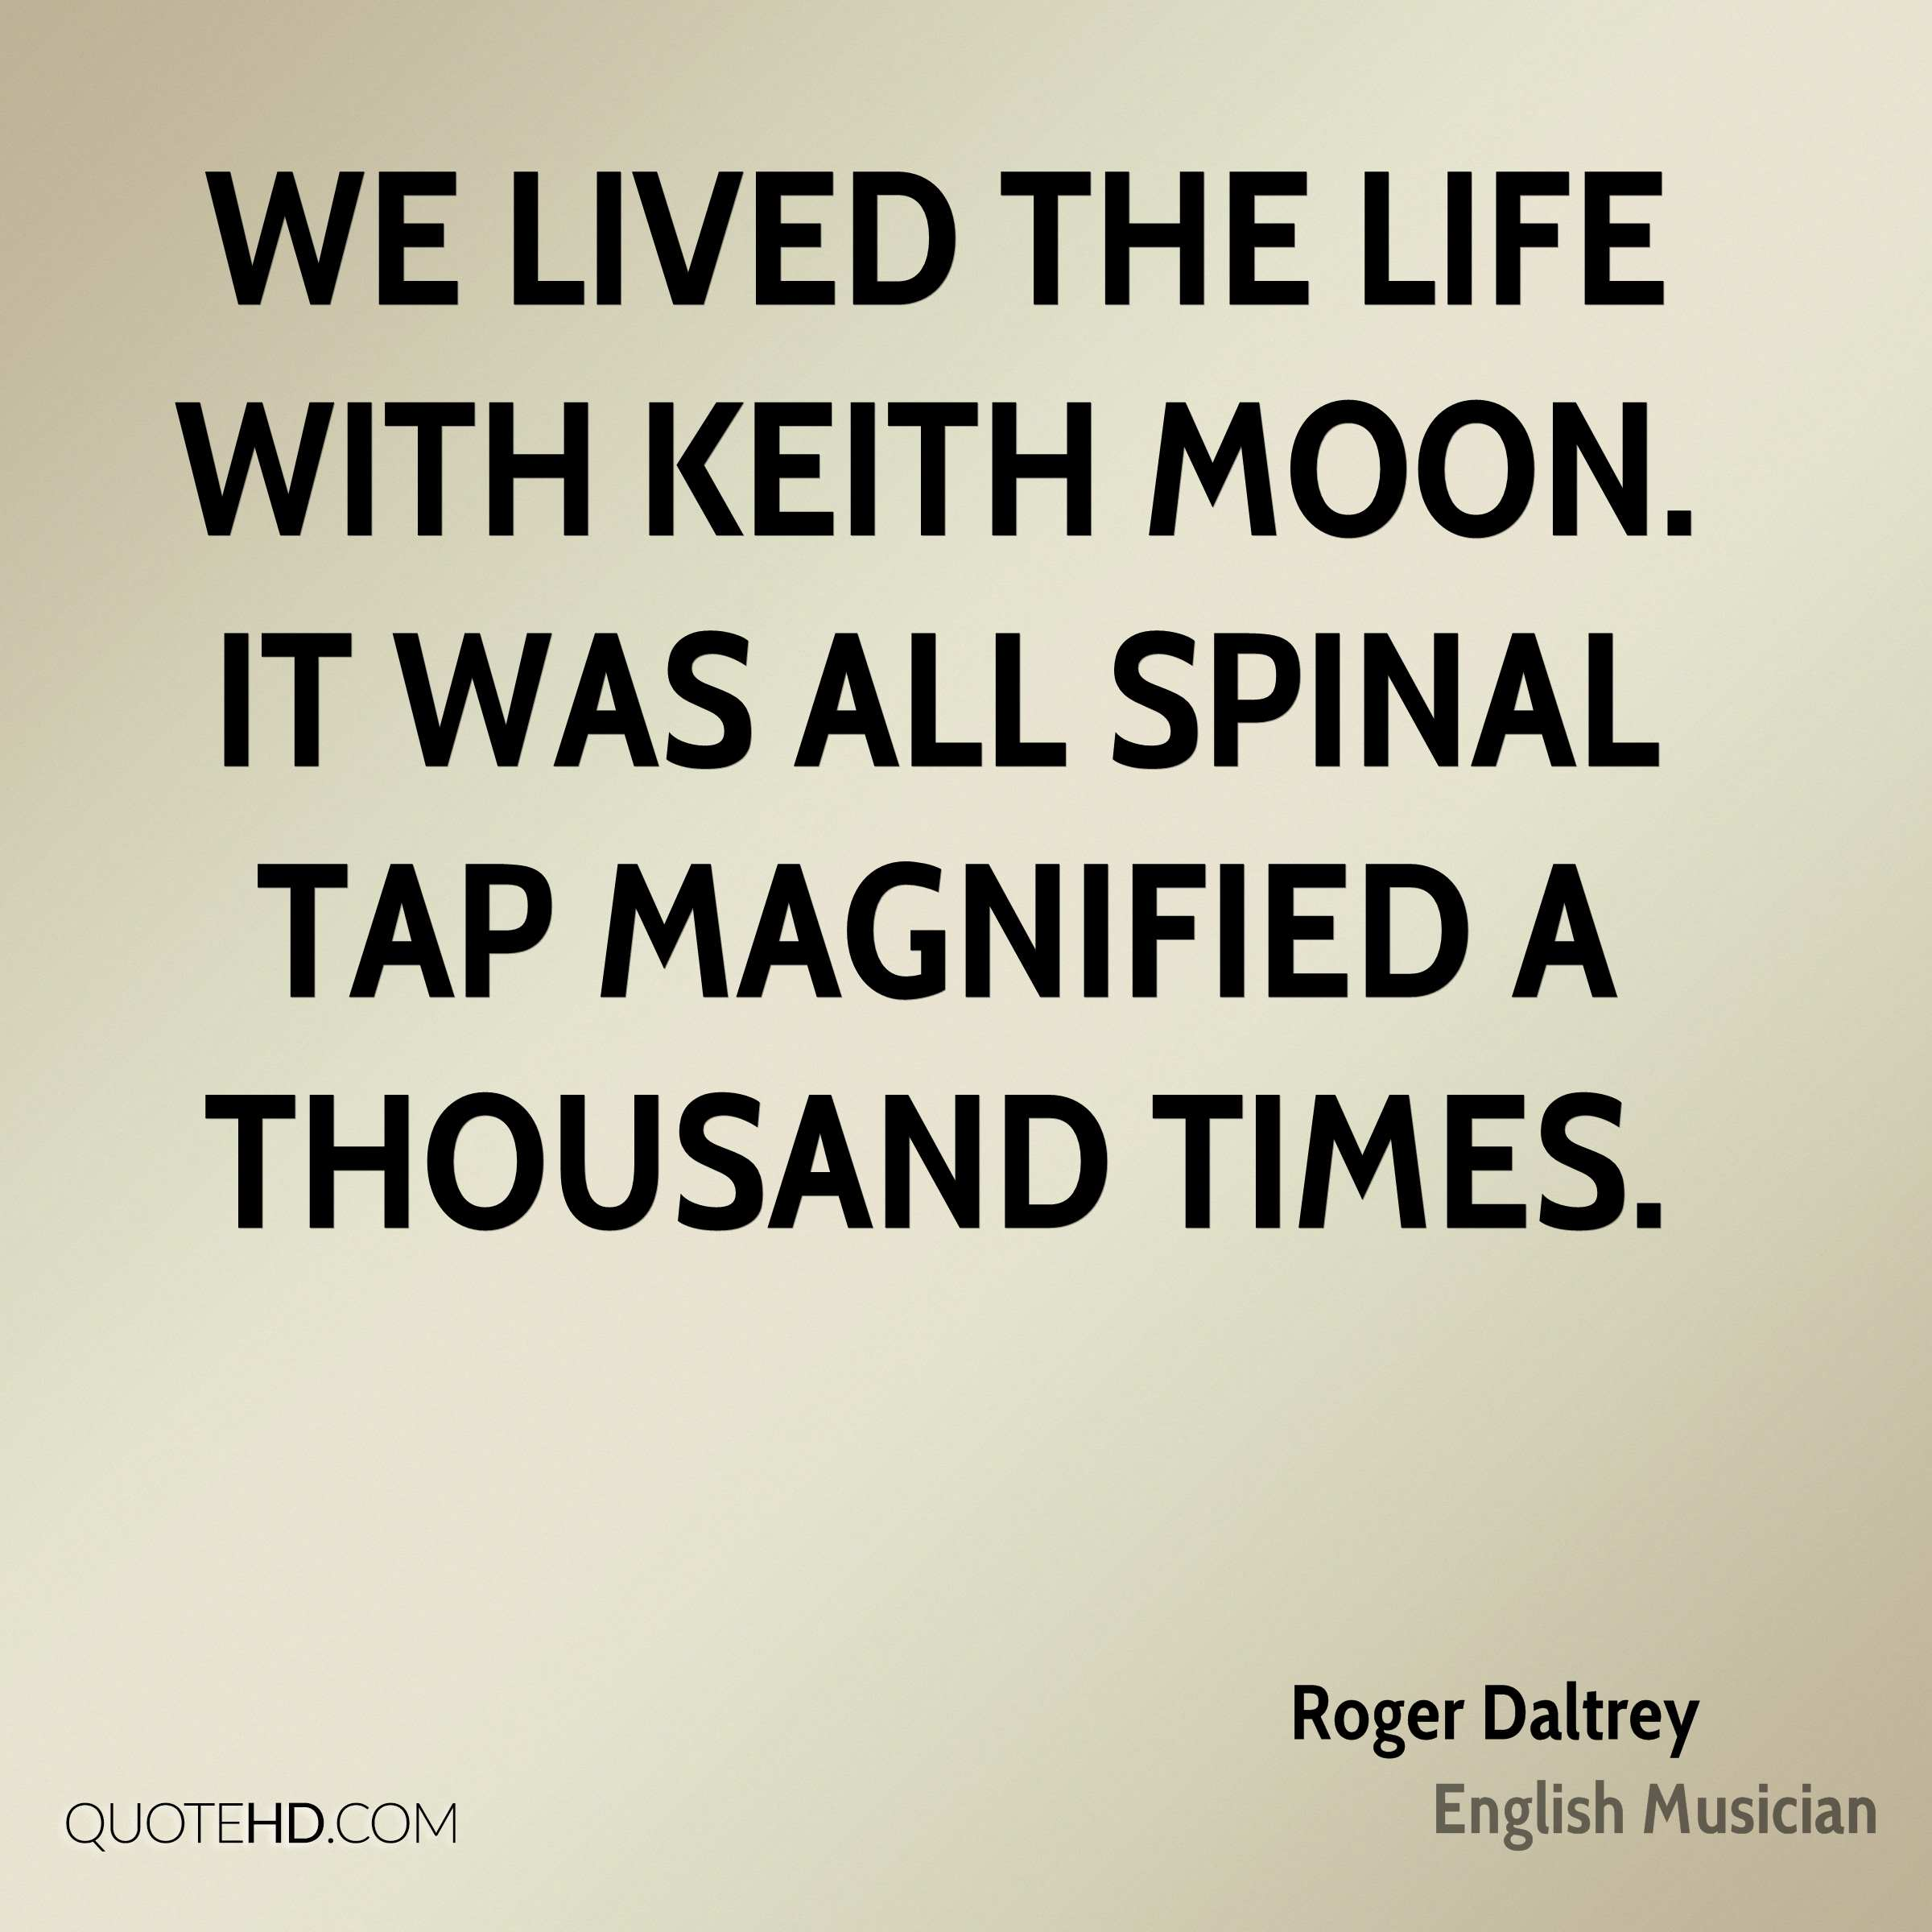 We lived the life with Keith Moon. It was all Spinal Tap magnified a thousand times.